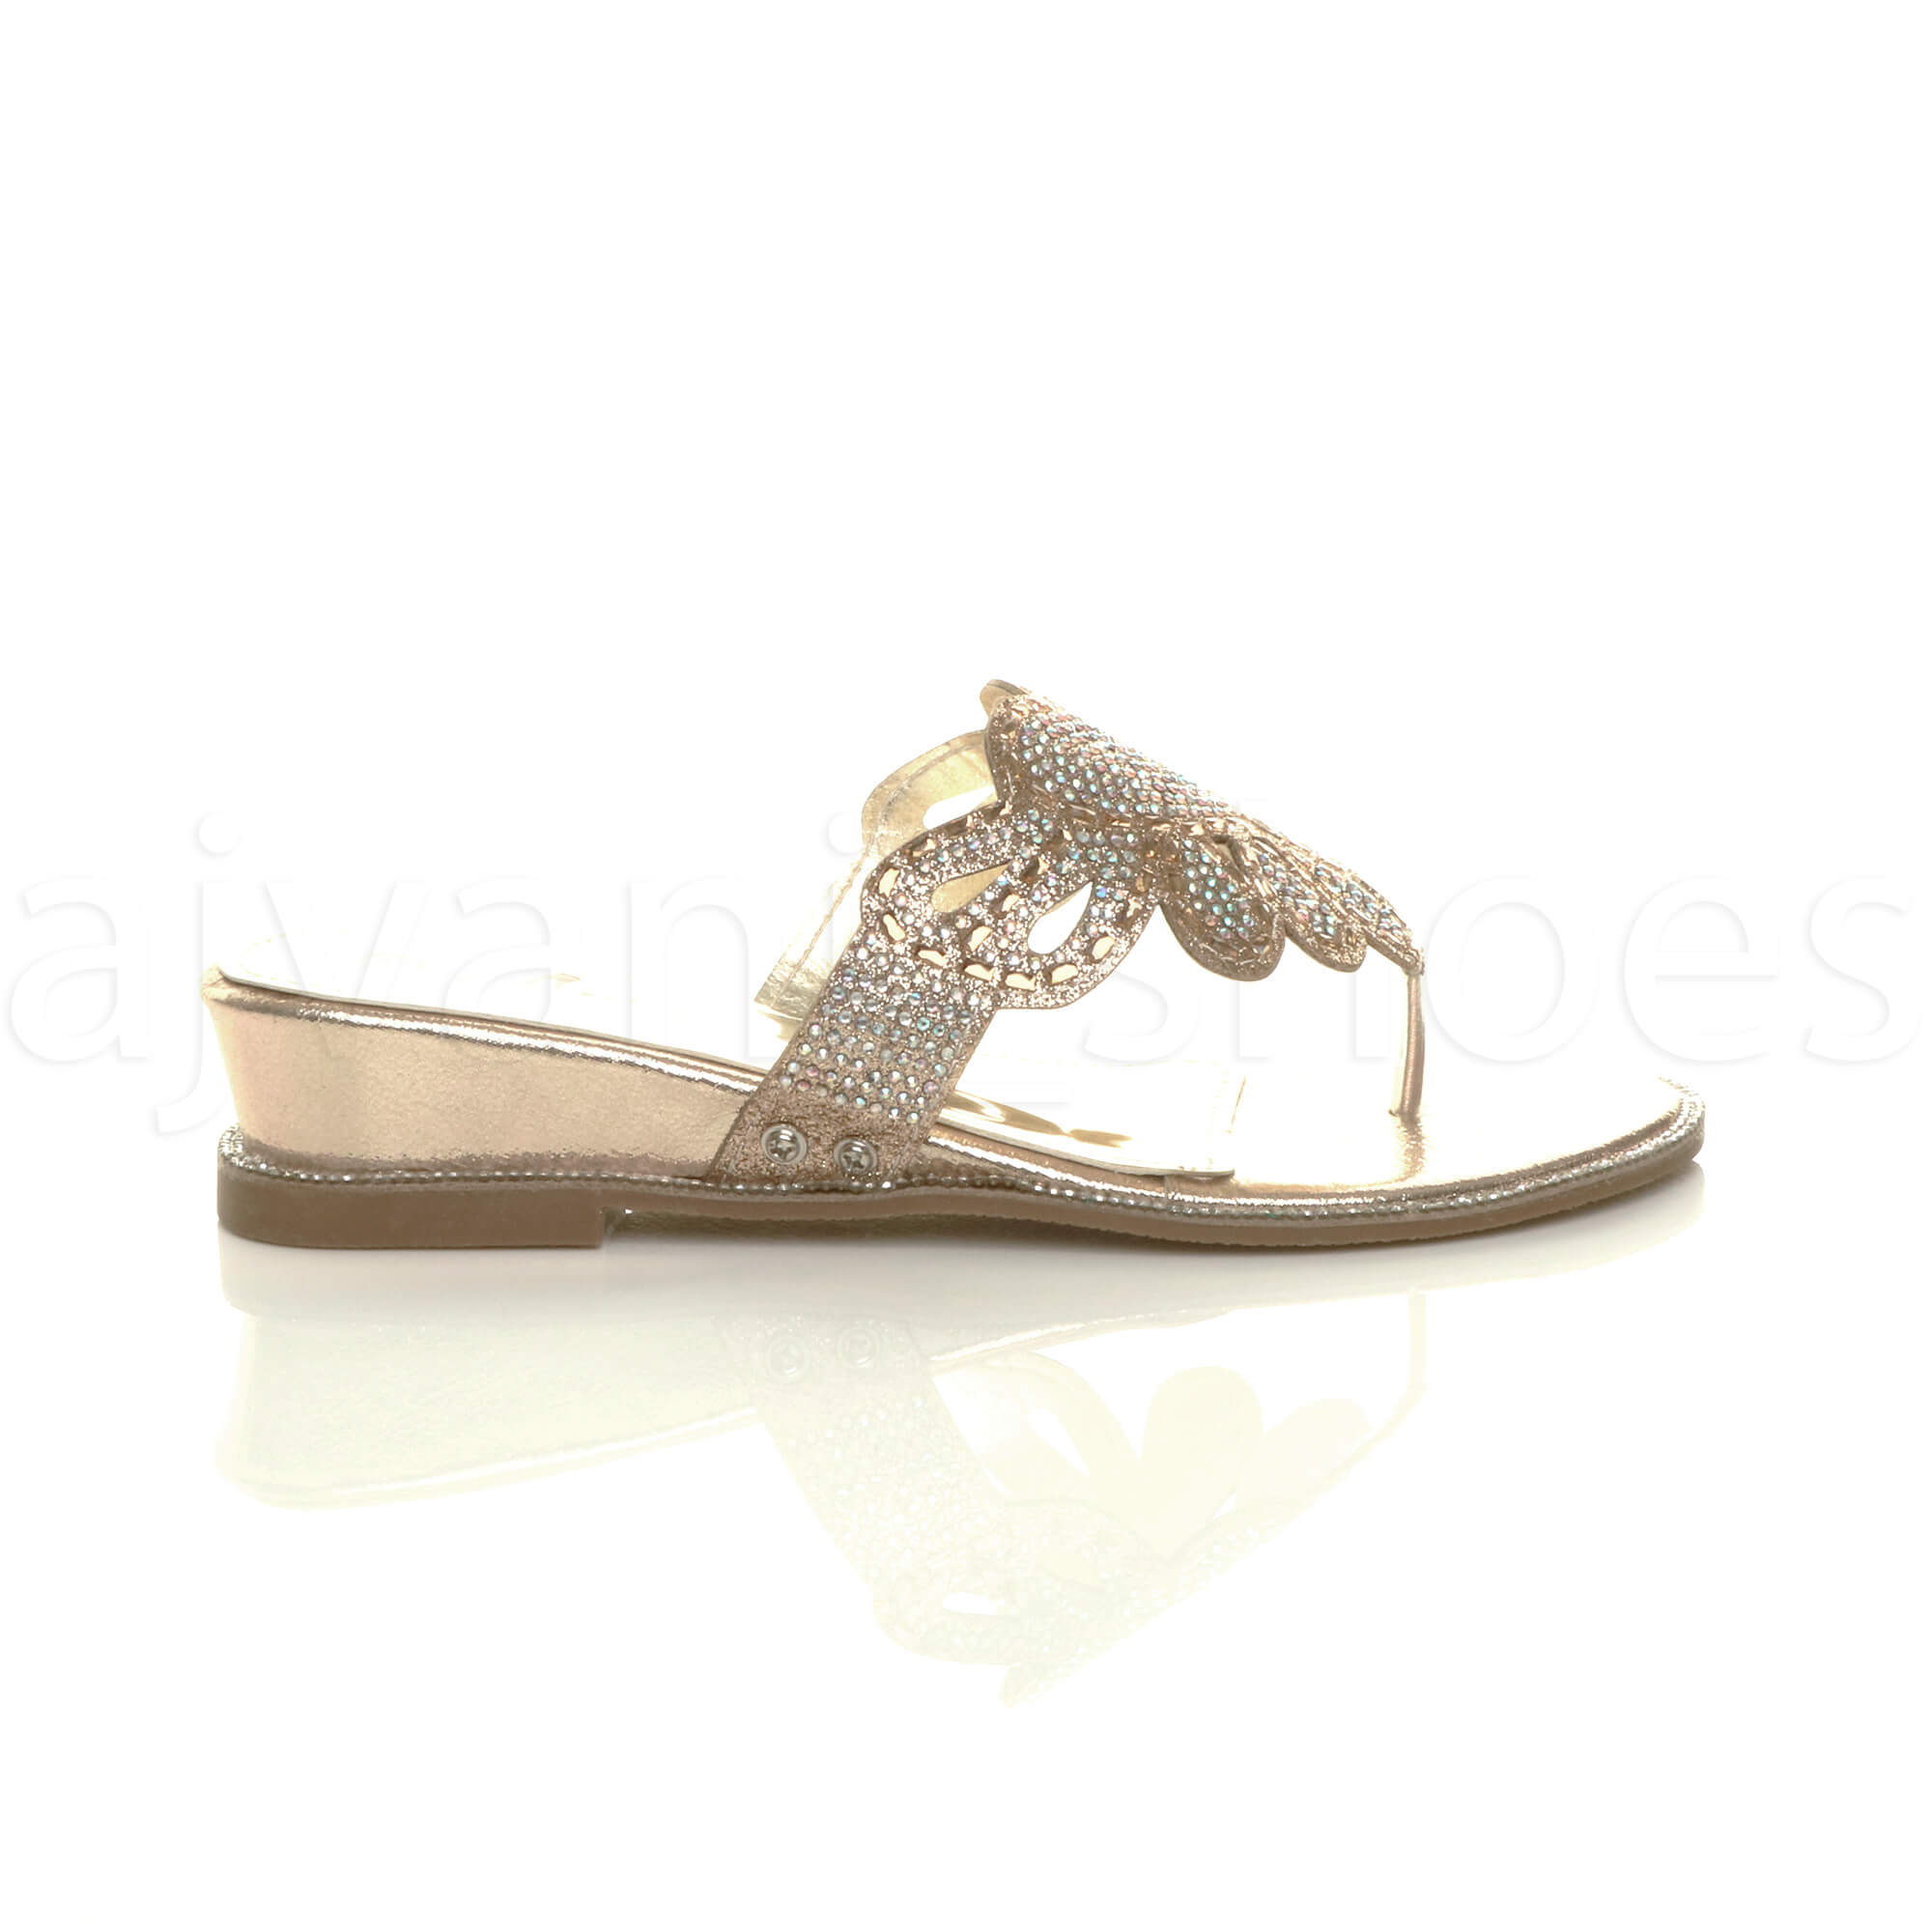 WOMENS-LADIES-LOW-MID-WEDGE-HEEL-DIAMANTE-EVENING-TOE-POST-SANDALS-MULES-SIZE thumbnail 11